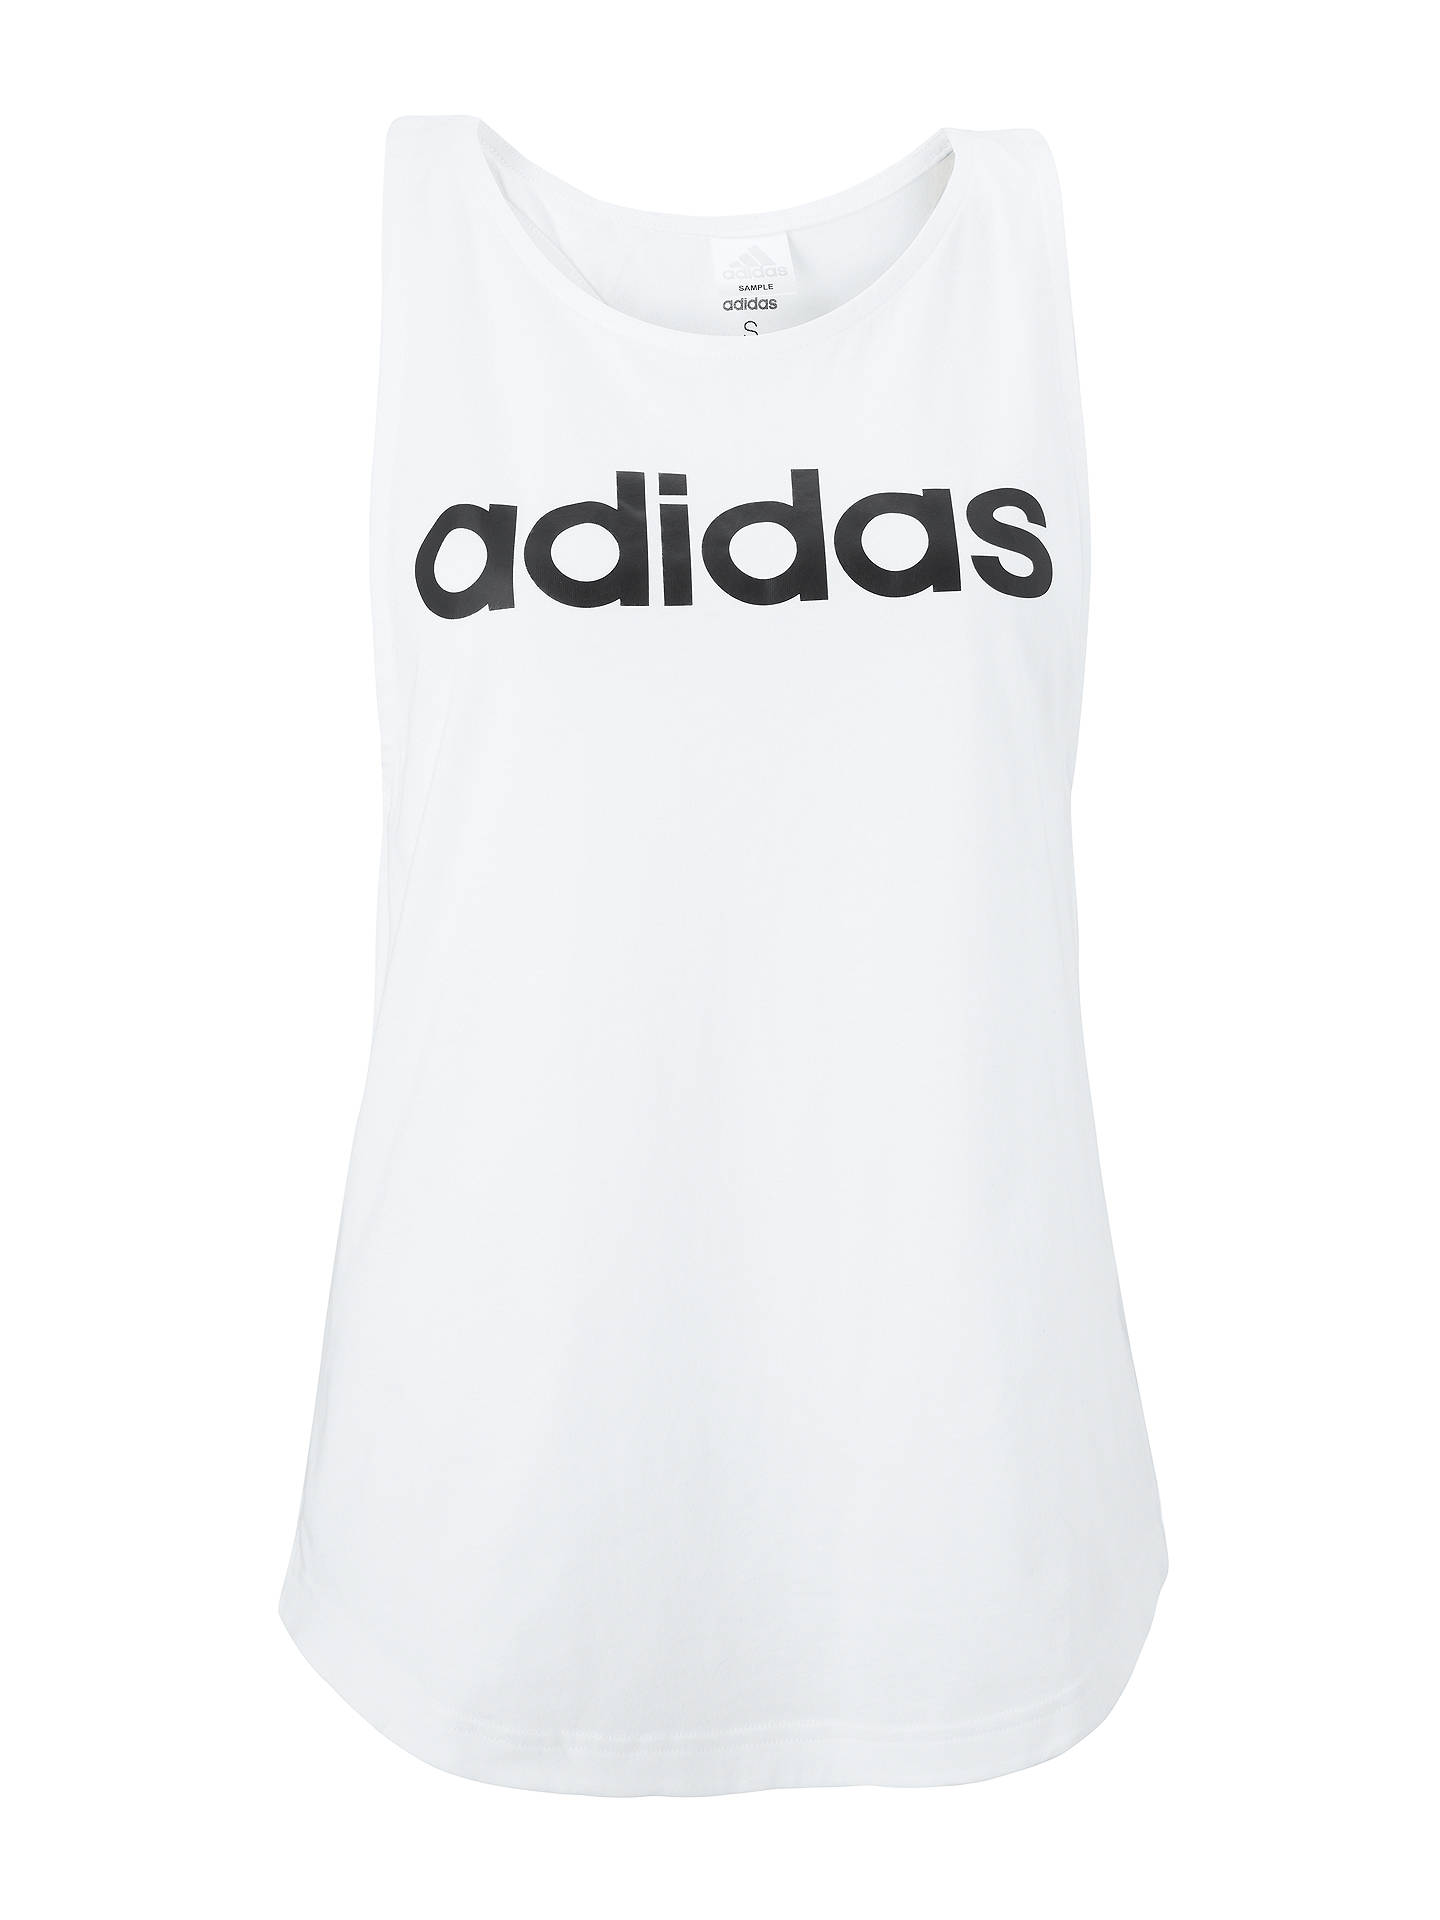 Buyadidas Essentials Linear Loose Tank Top, White/Black, XS Online at johnlewis.com